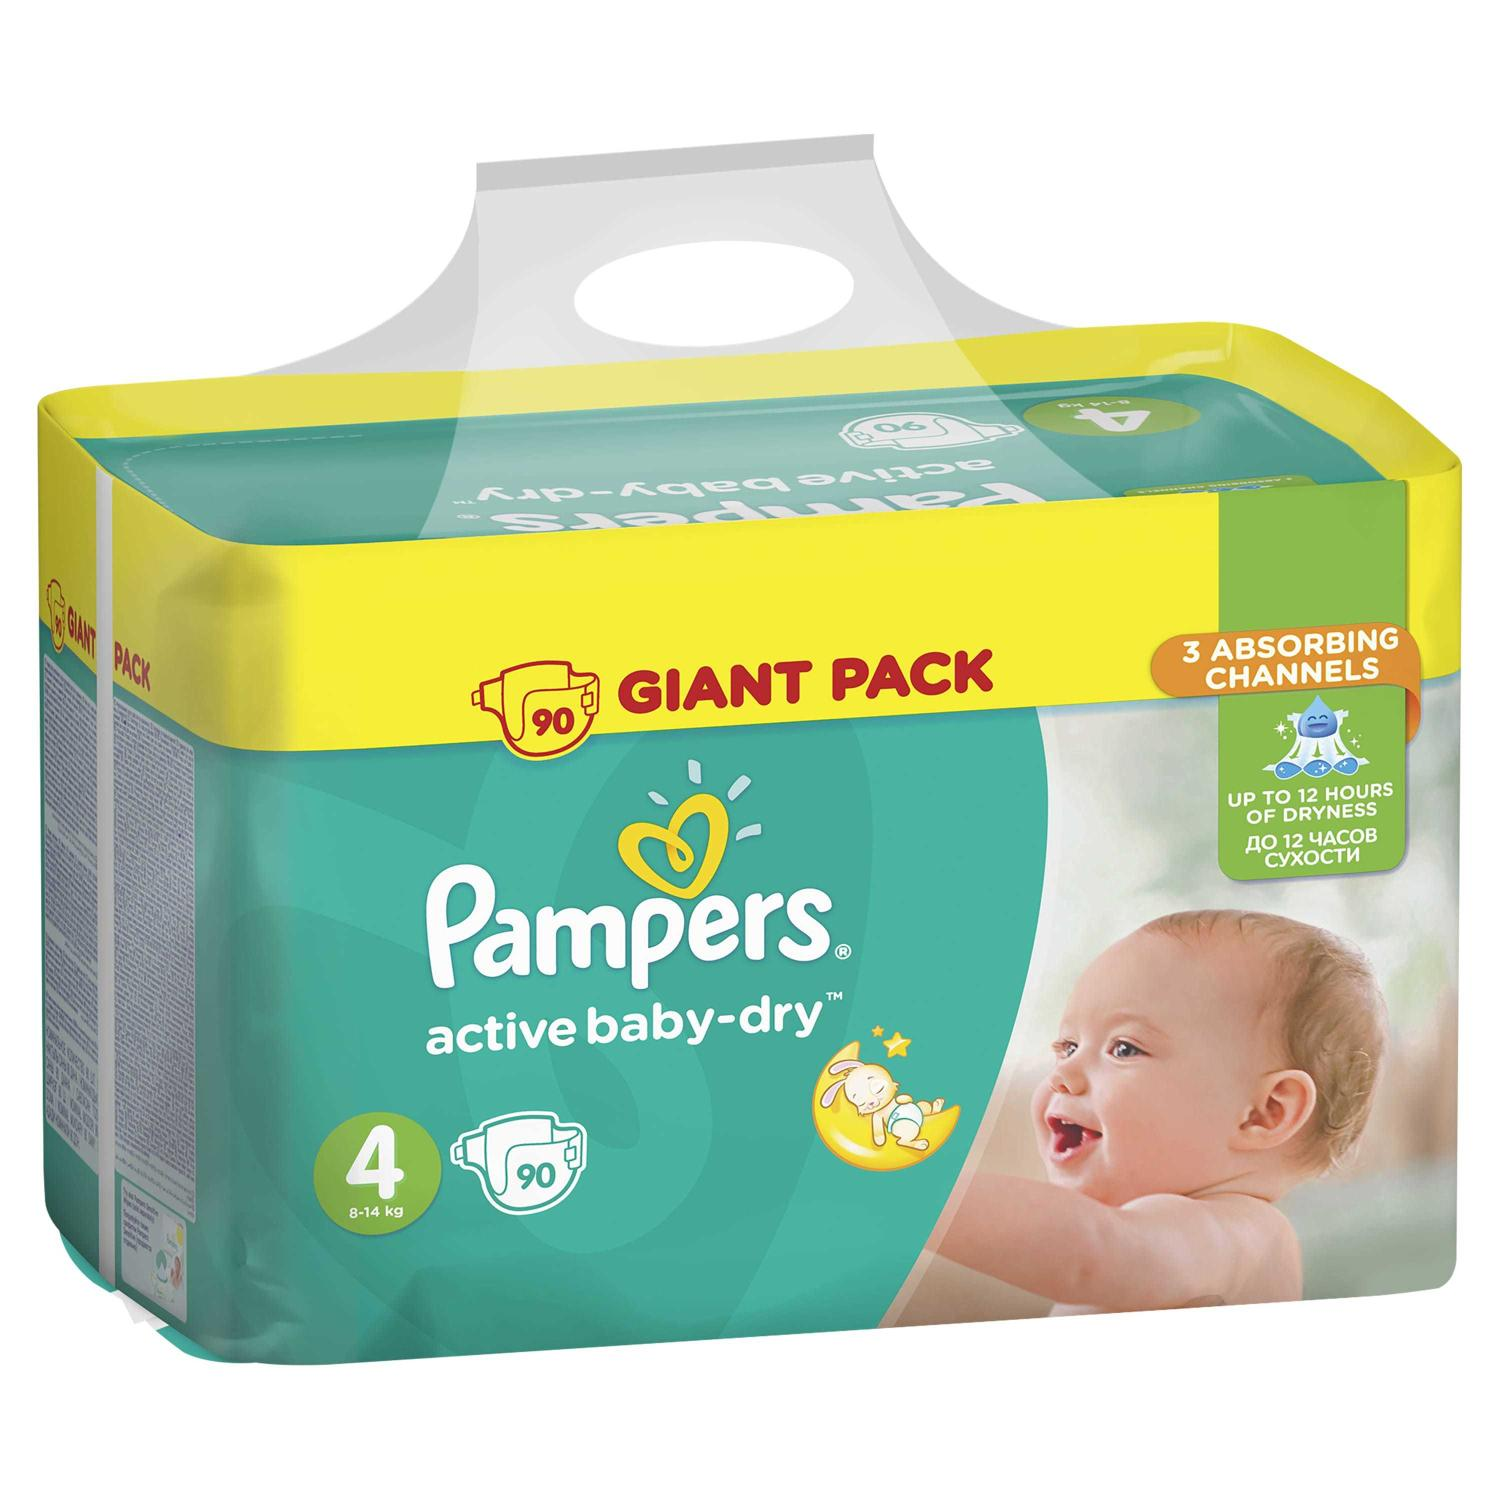 Подгузники Pampers Active Baby-Dry 4 (8-14 кг) - 90 шт